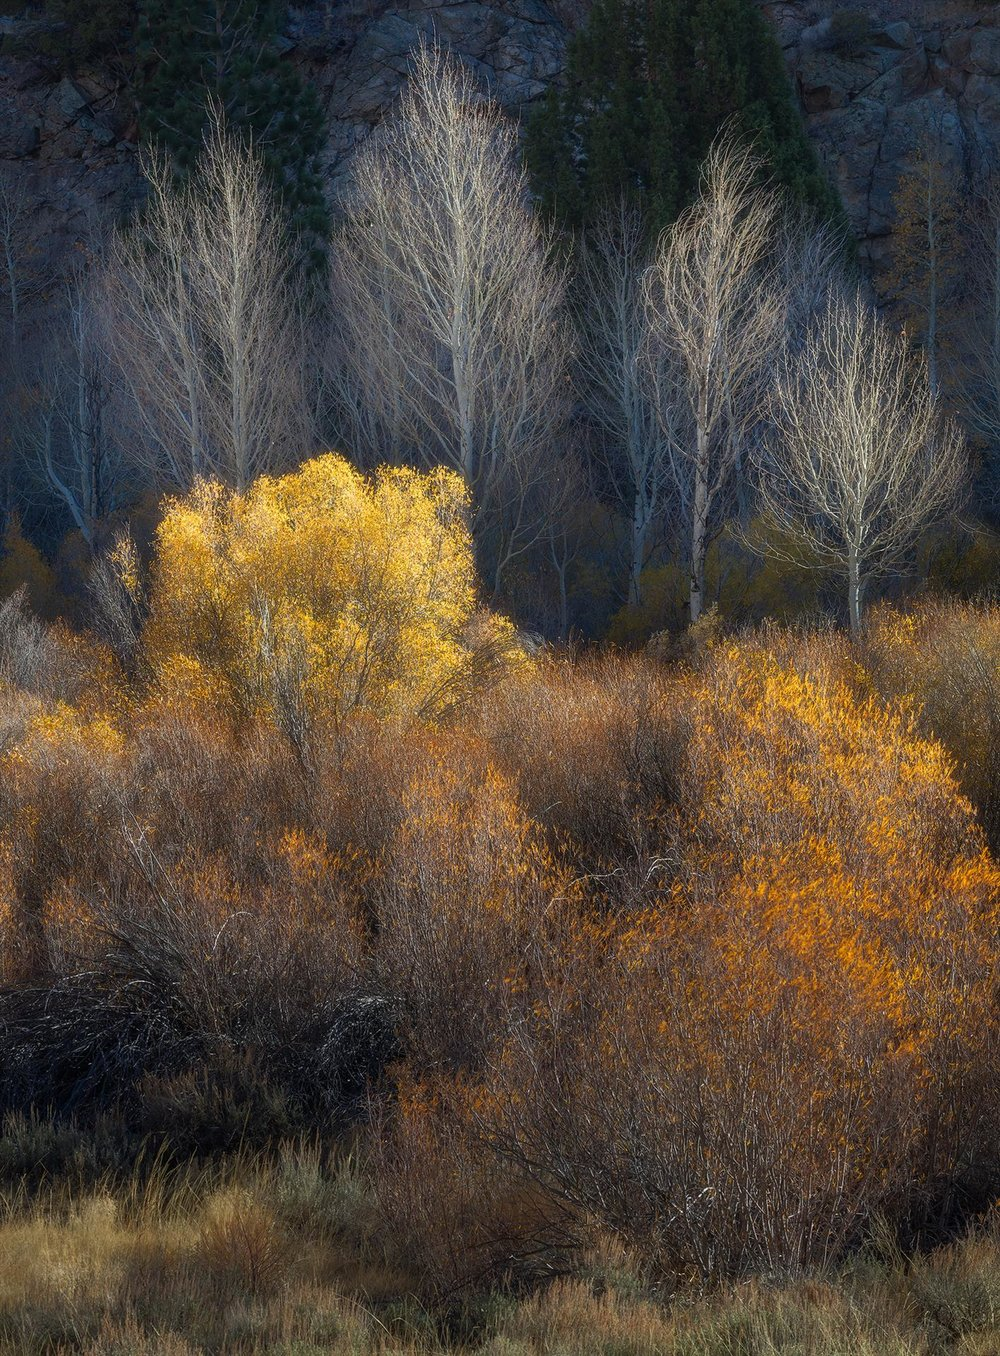 Autumn Aglow, Charlotte Gibb